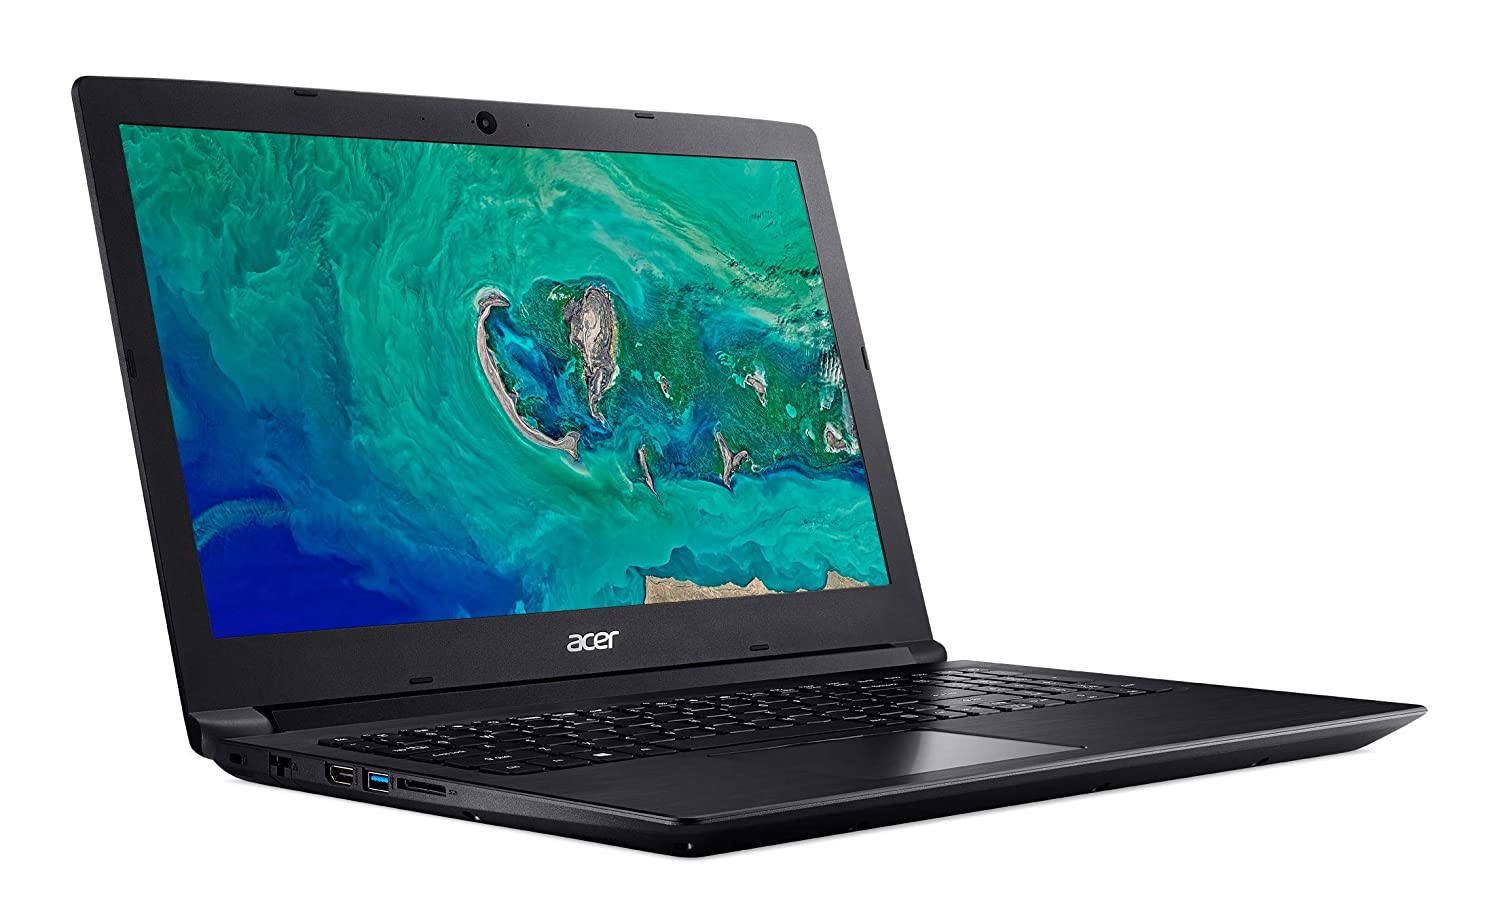 ACER EXTENSA 4130 NOTEBOOK AMD CPU DRIVERS FOR WINDOWS DOWNLOAD